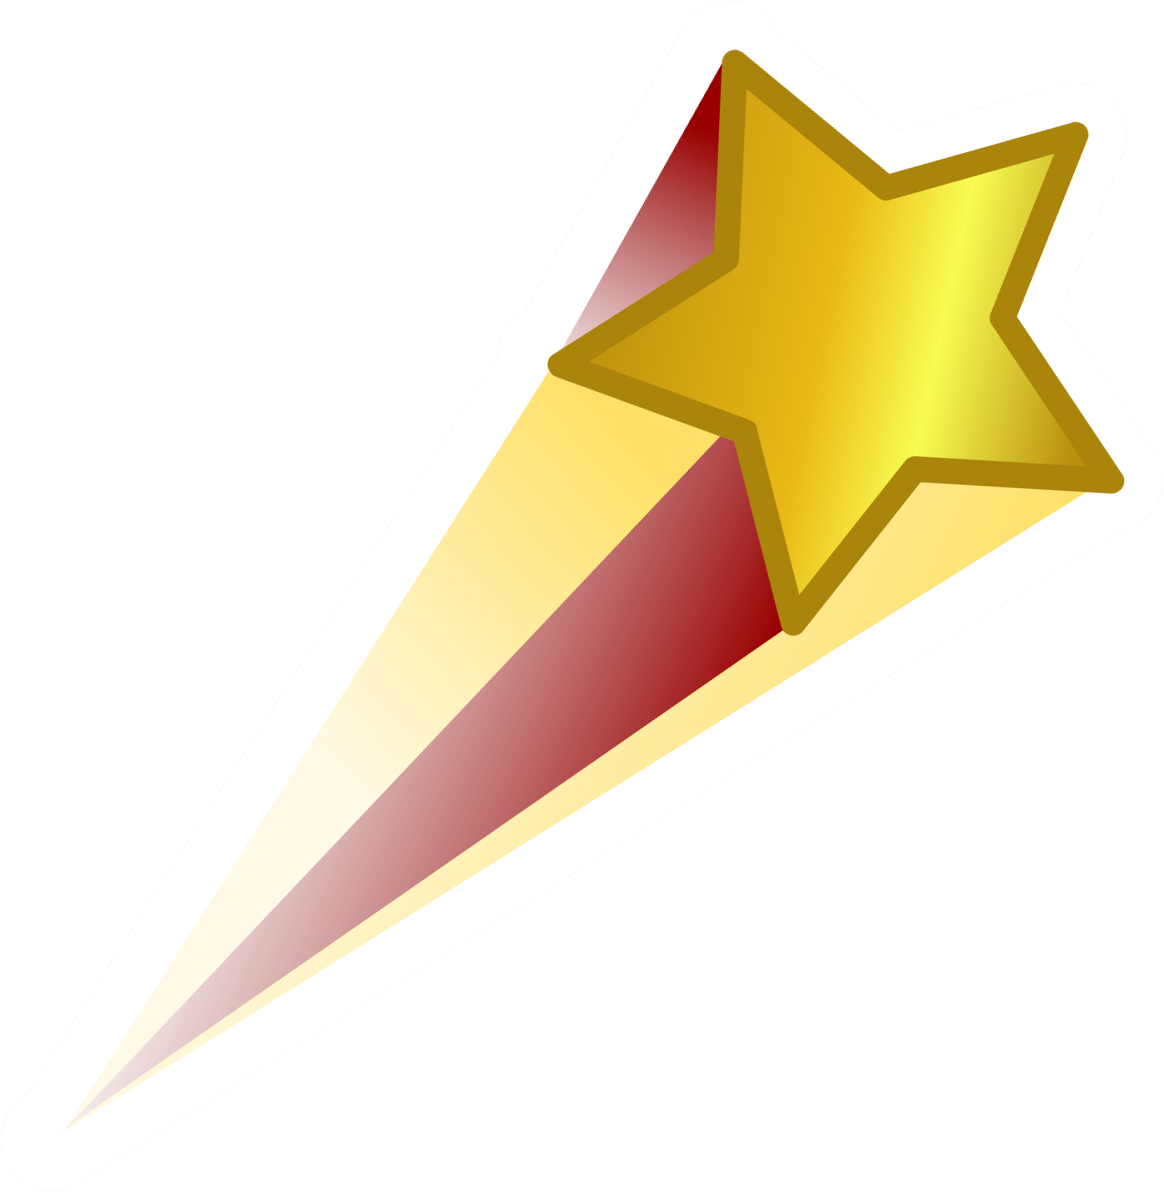 Shooting Star Pin - Club Penguin Wiki - The free, editable ...